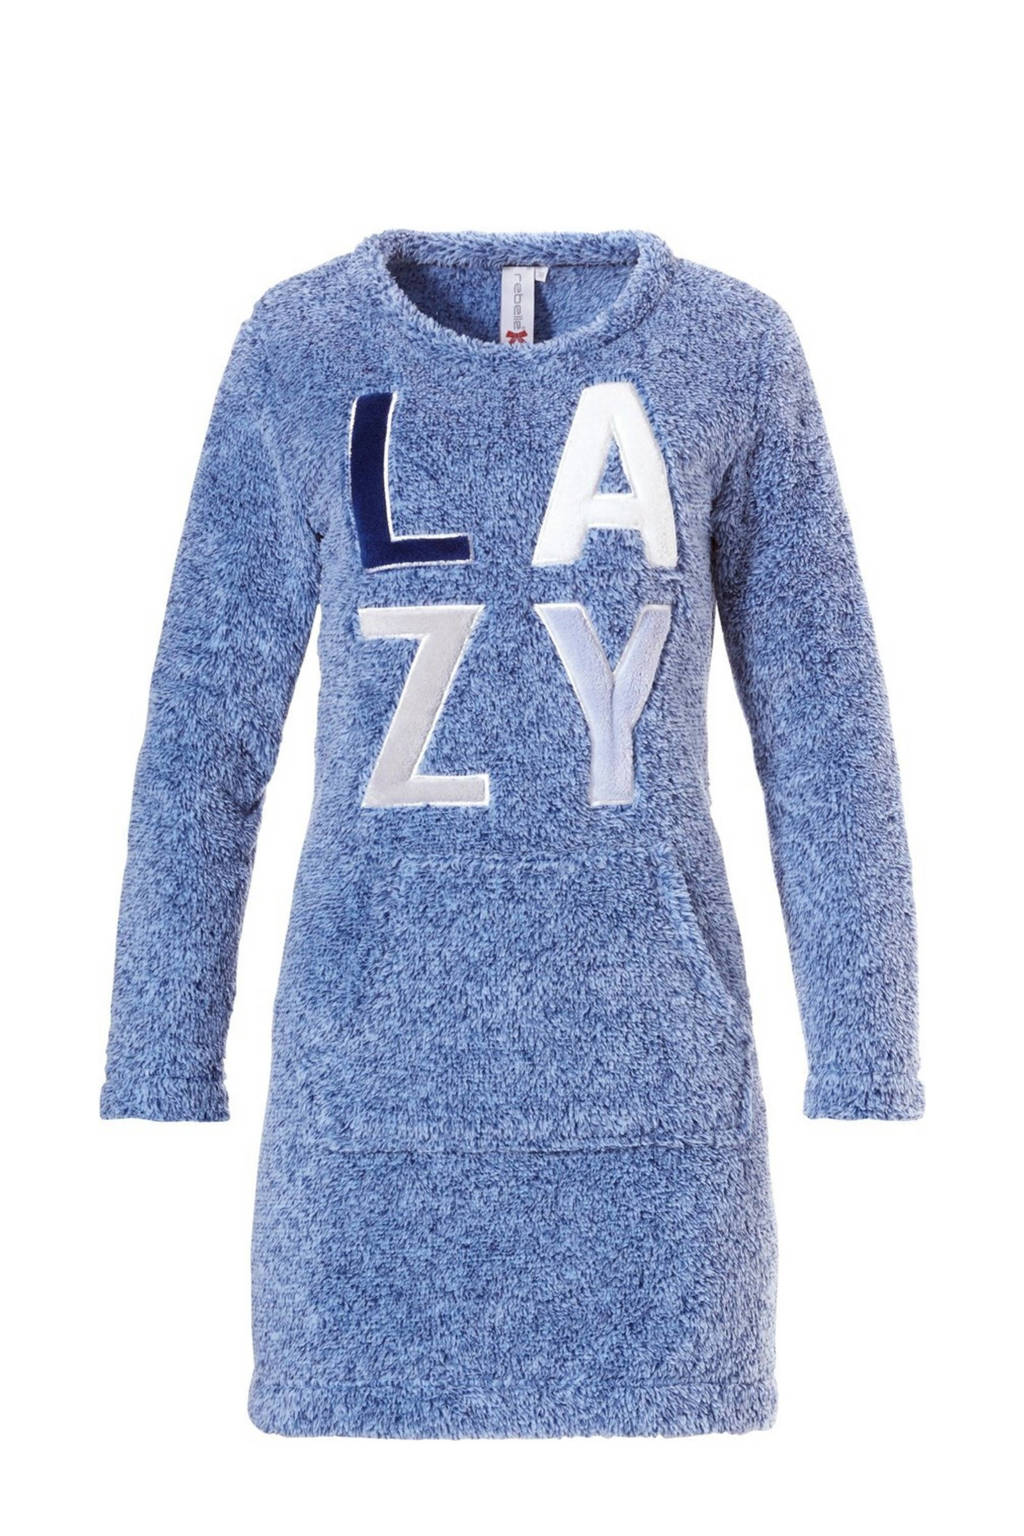 Rebelle fleece loungejurk met applicatie blauw, Blauw